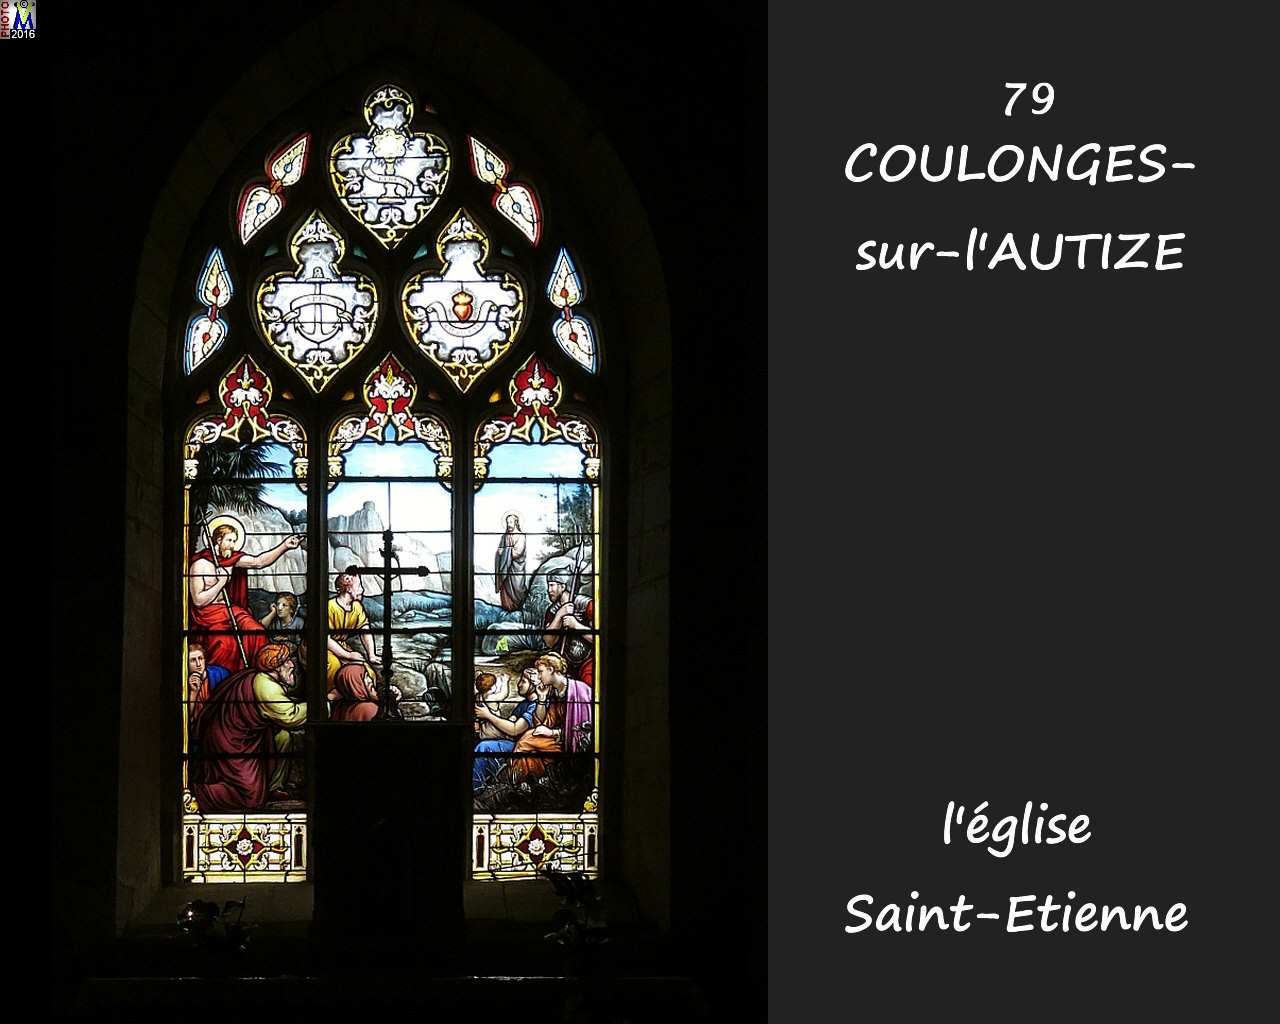 79COULONGES-AUTIZE_eglise_1232.jpg